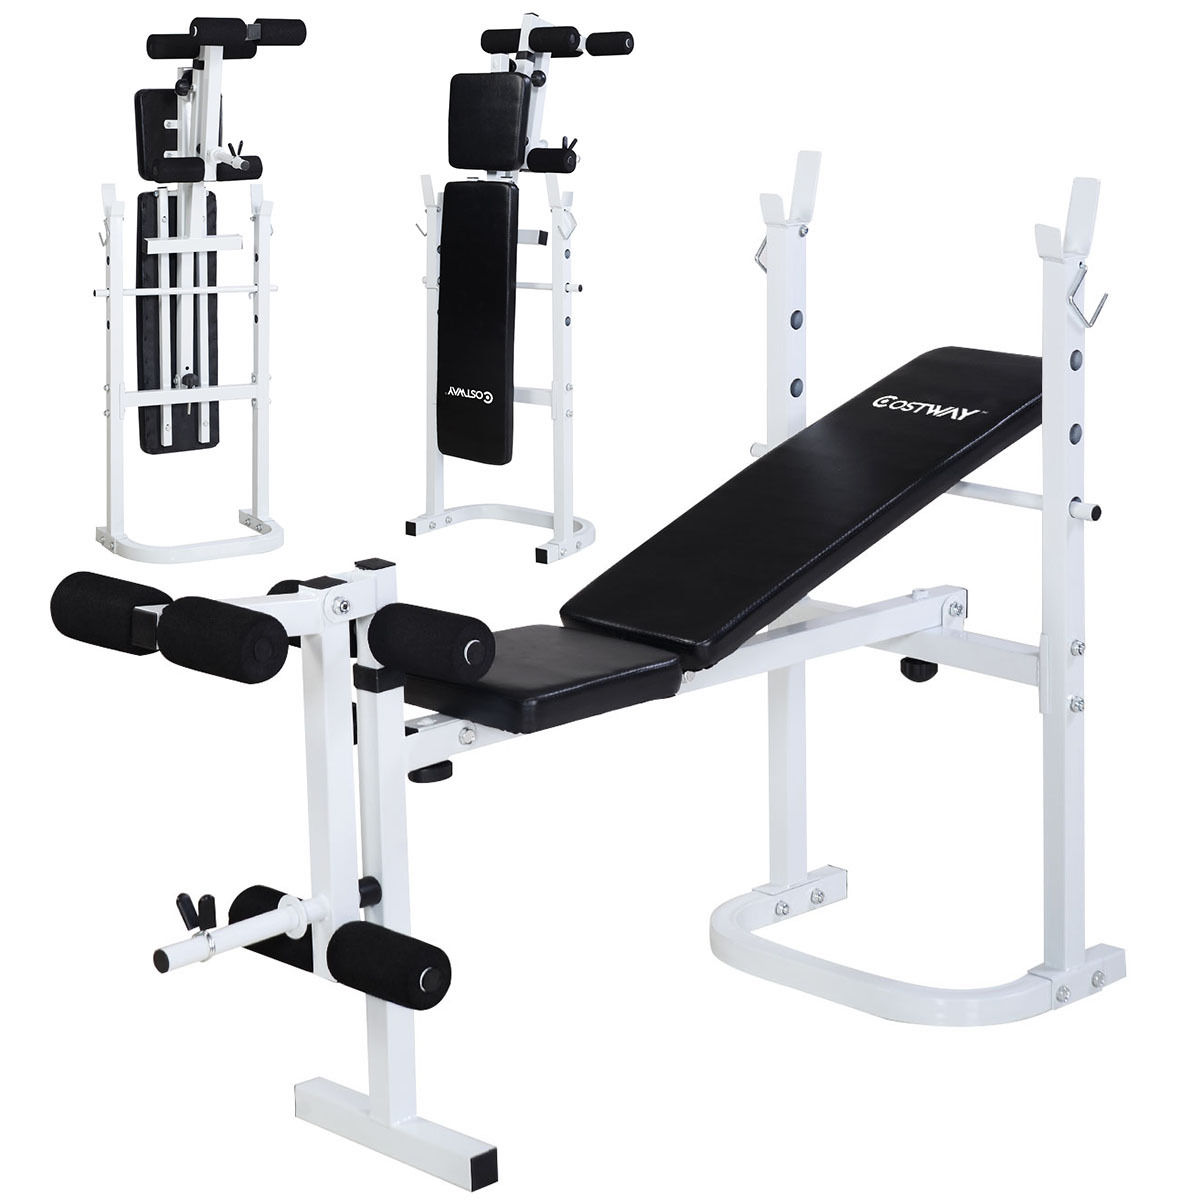 Costway Olympic Folding Weight Bench Incline Lift Workout Press Home